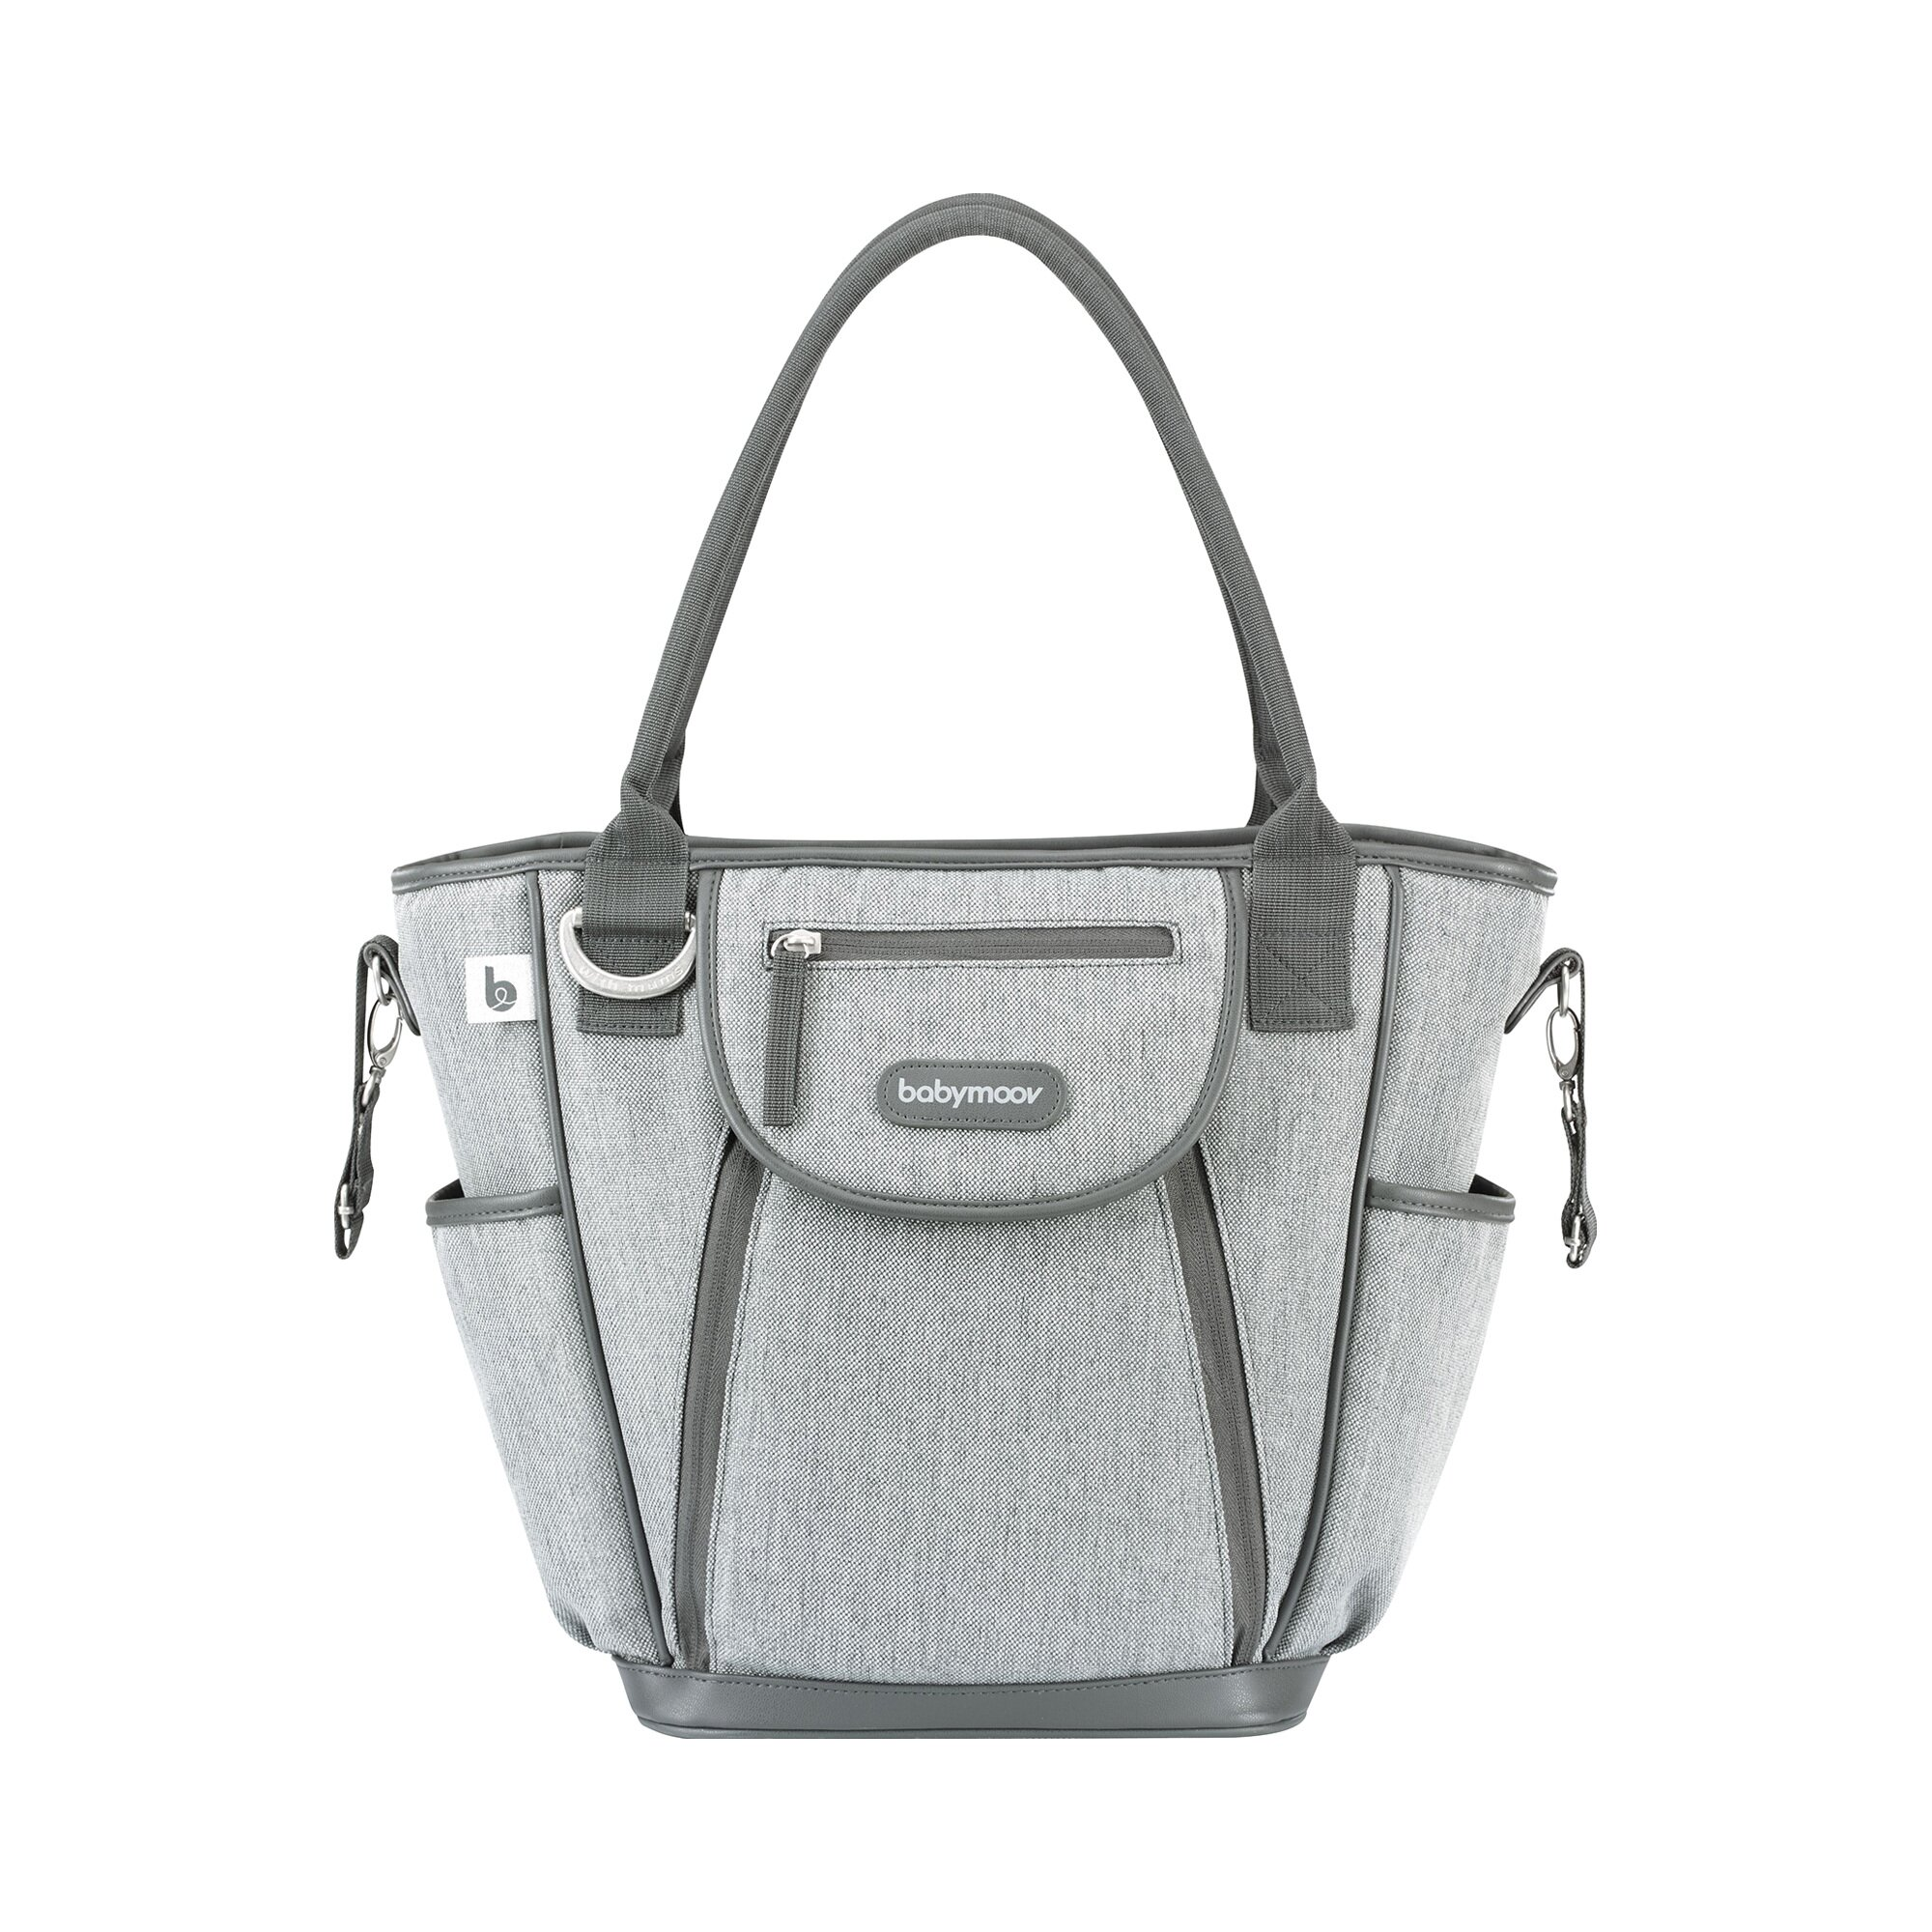 Babymoov Wickeltasche Daily Bag grau